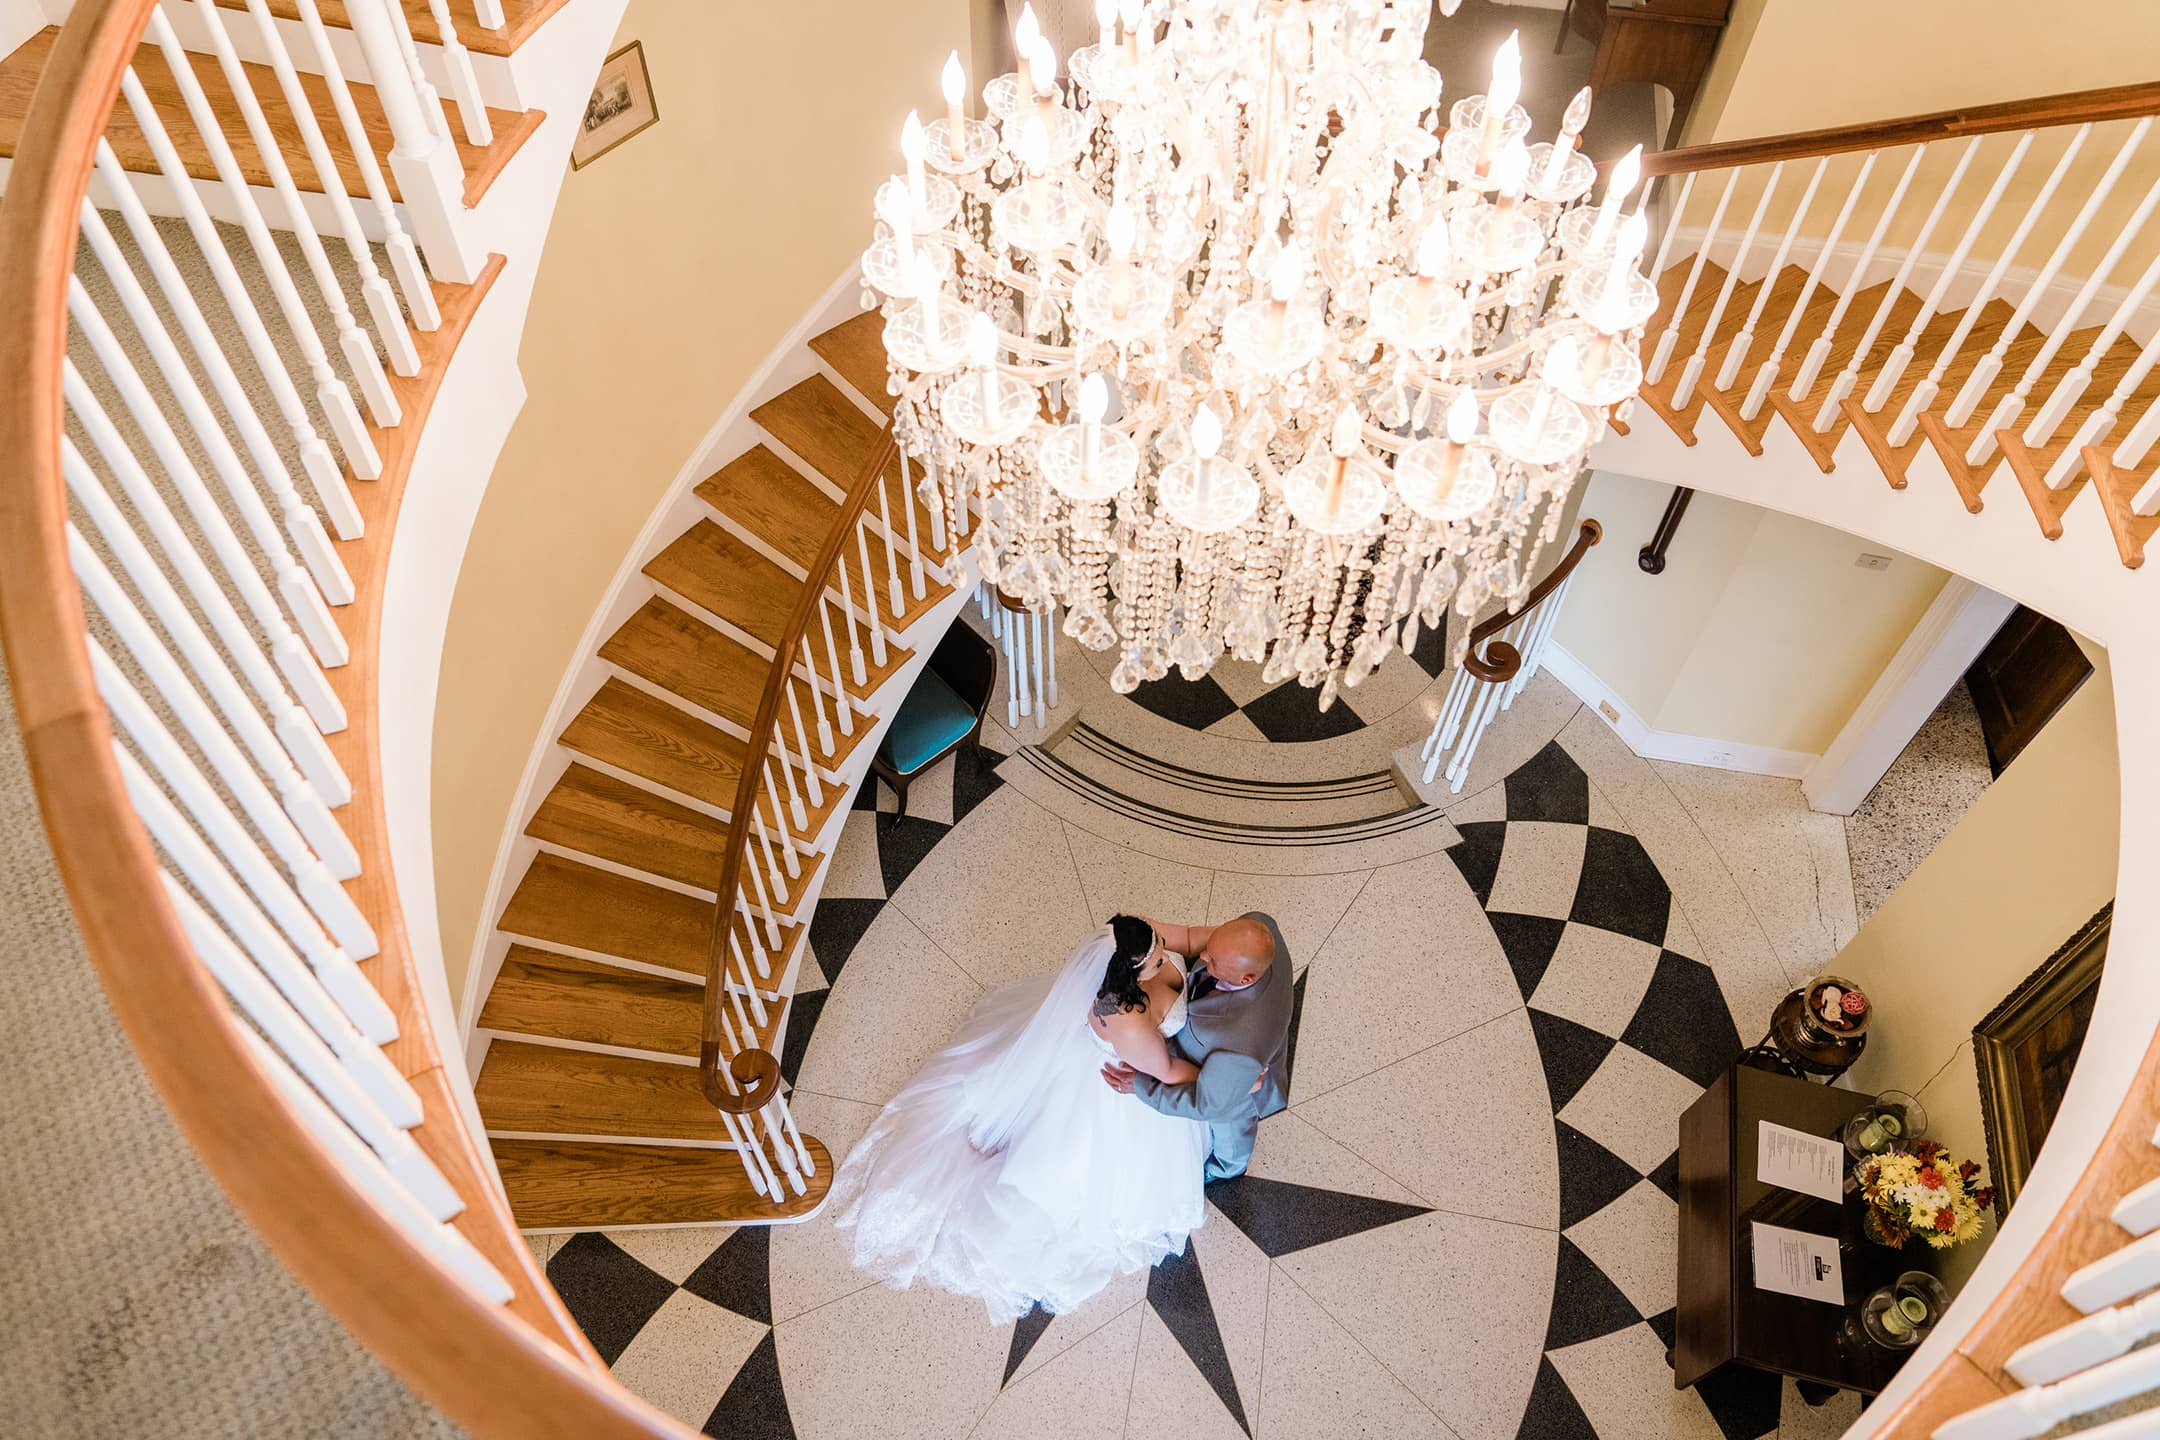 Brid and Groom embrace under an elegant chandelier and staircase